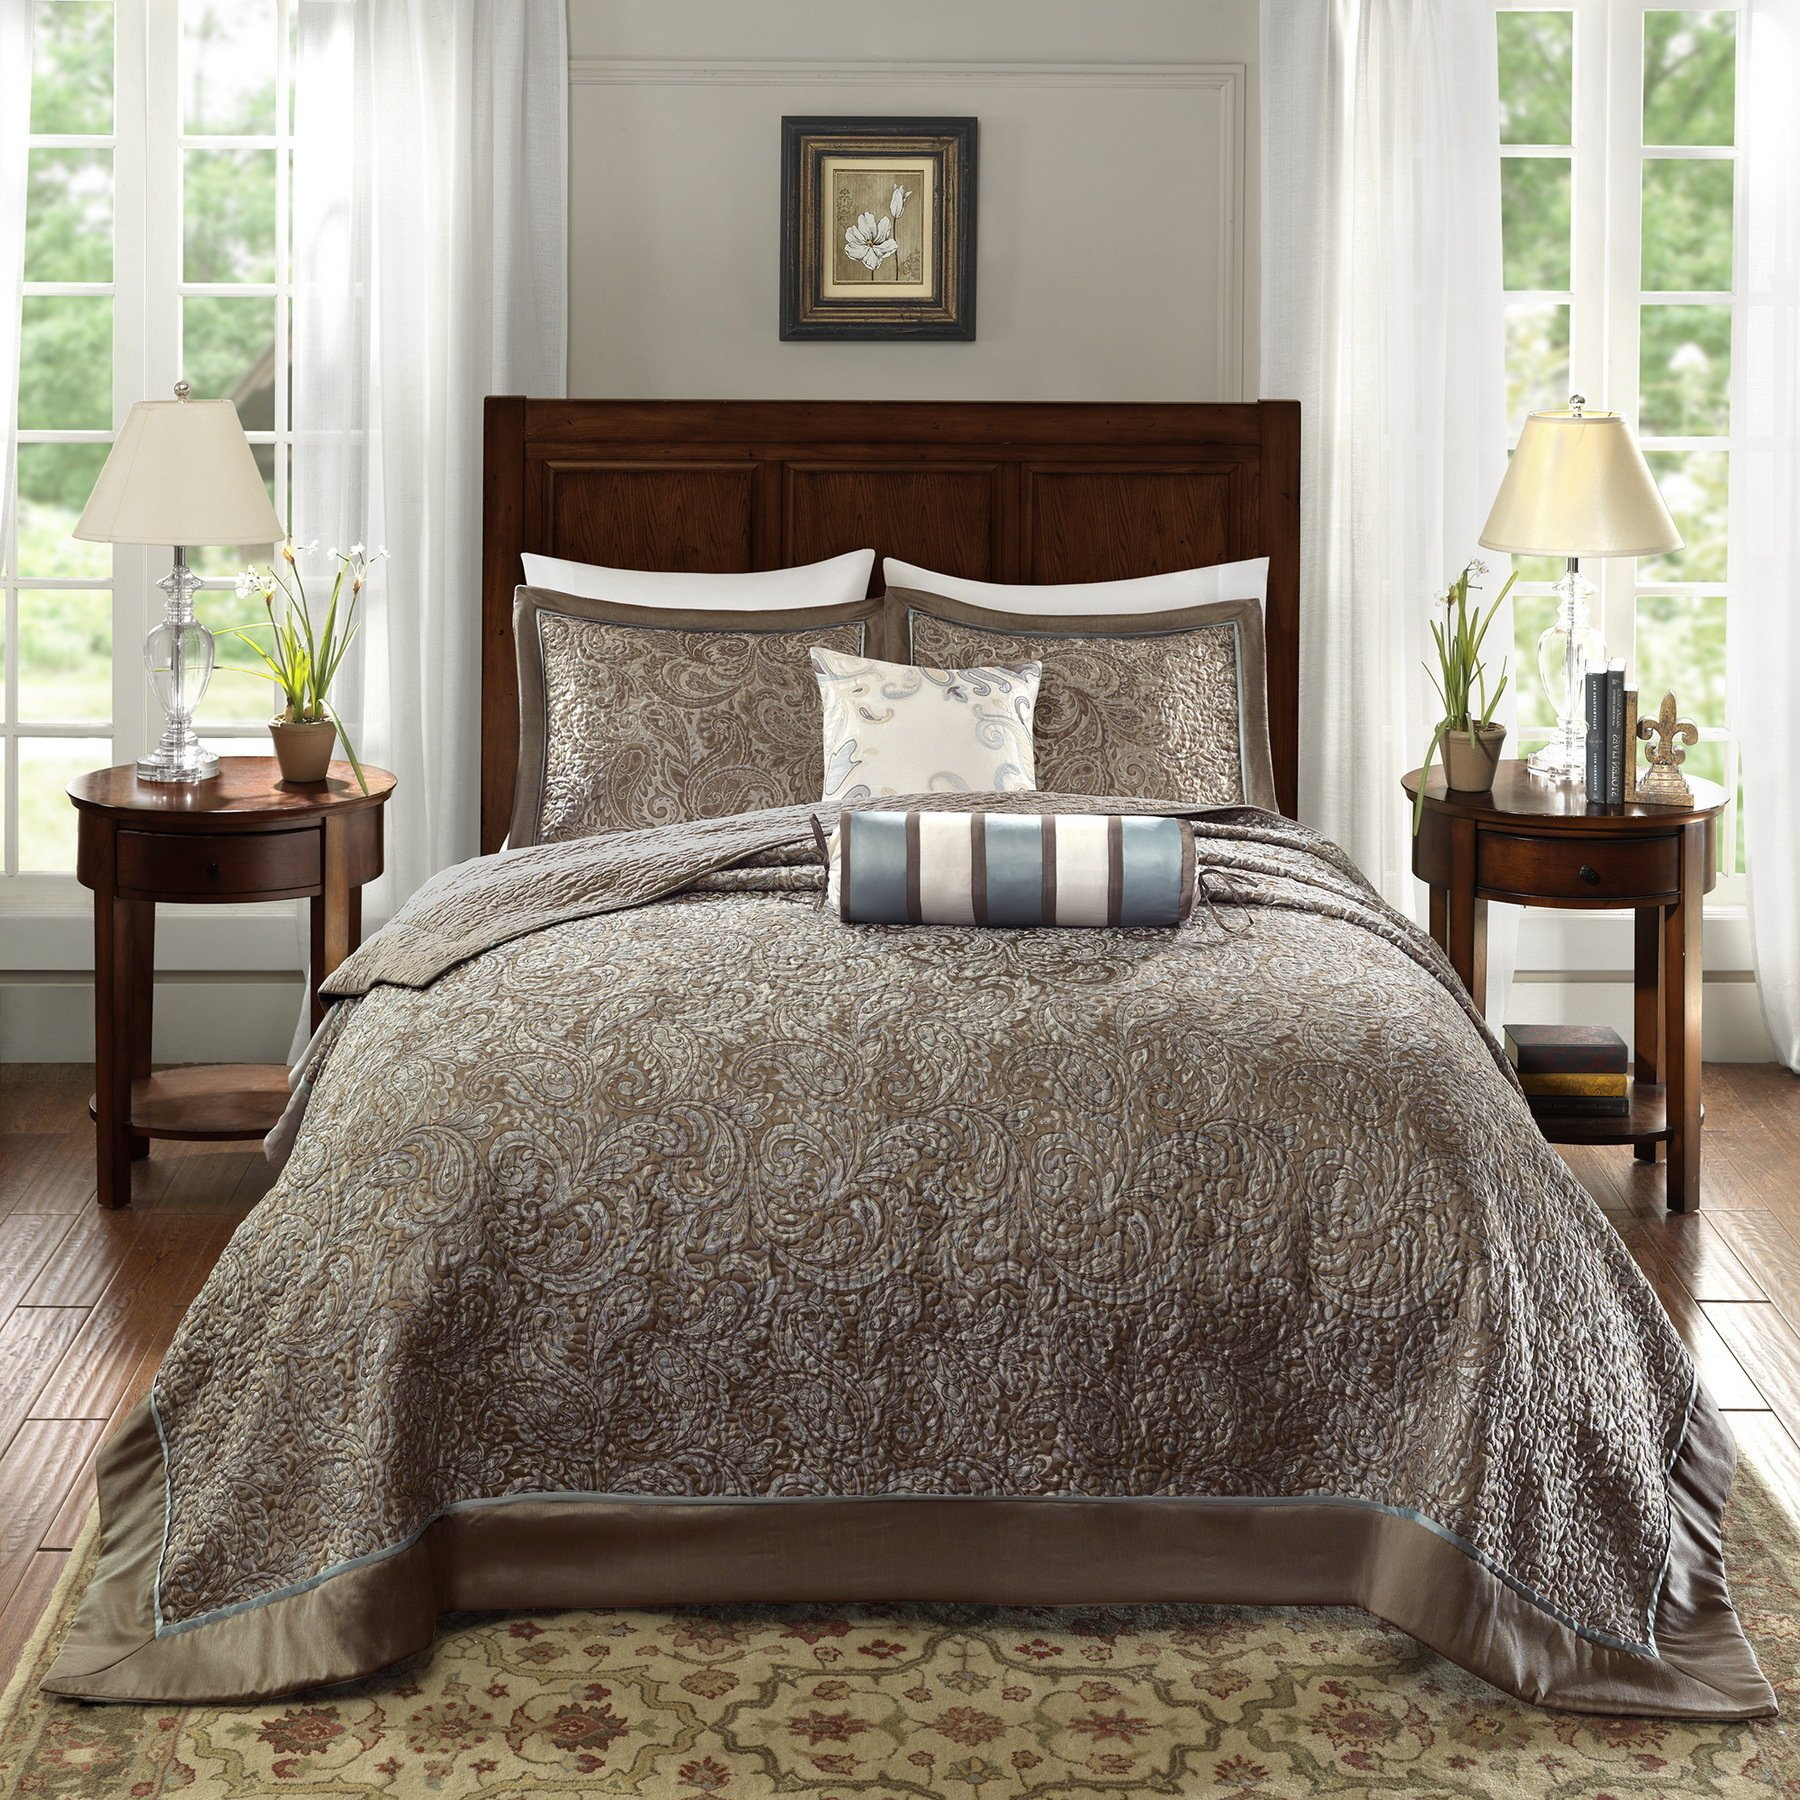 D&H 5 Piece 120 x 118 Oversized Blue Brown King Bedspread to The Floor Set, Extra Long Jacquard Paisley Bedding Xtra Wide Drops Over Edge Frame, Drapes Down Sides Hangs Over Bed, Polyester